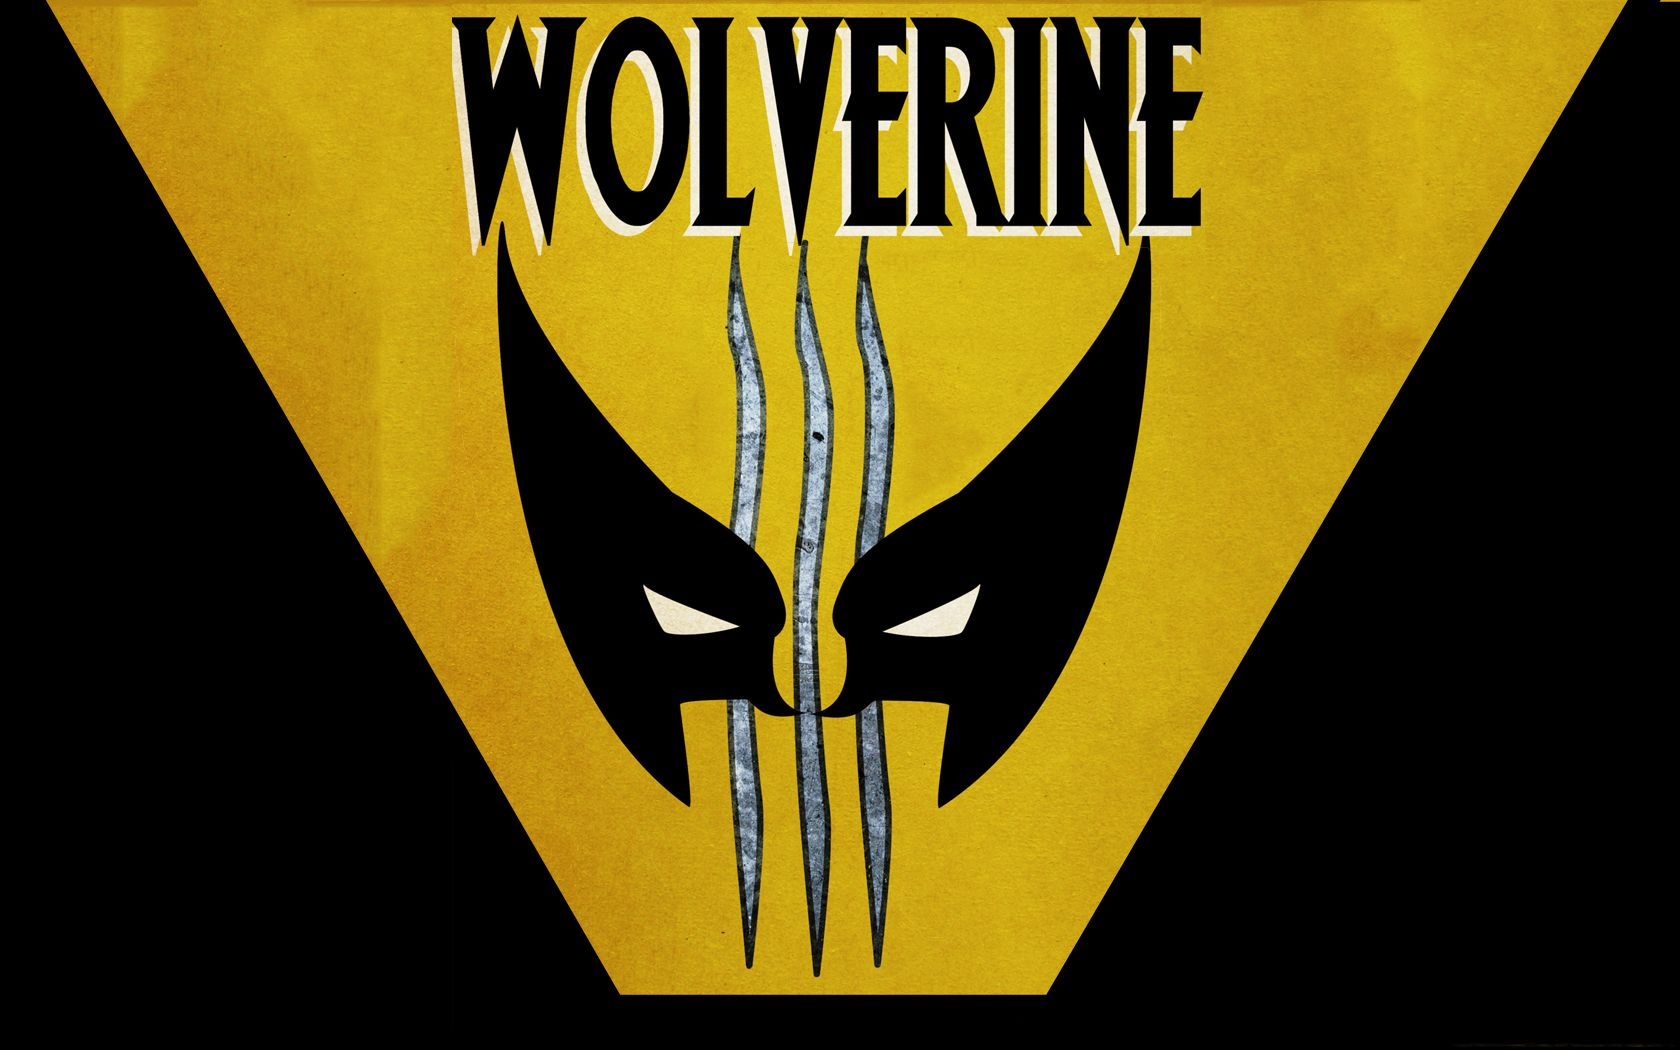 1680x1050 Wolverine Wallpaper and Background Image | 1680x1050 | ID ...